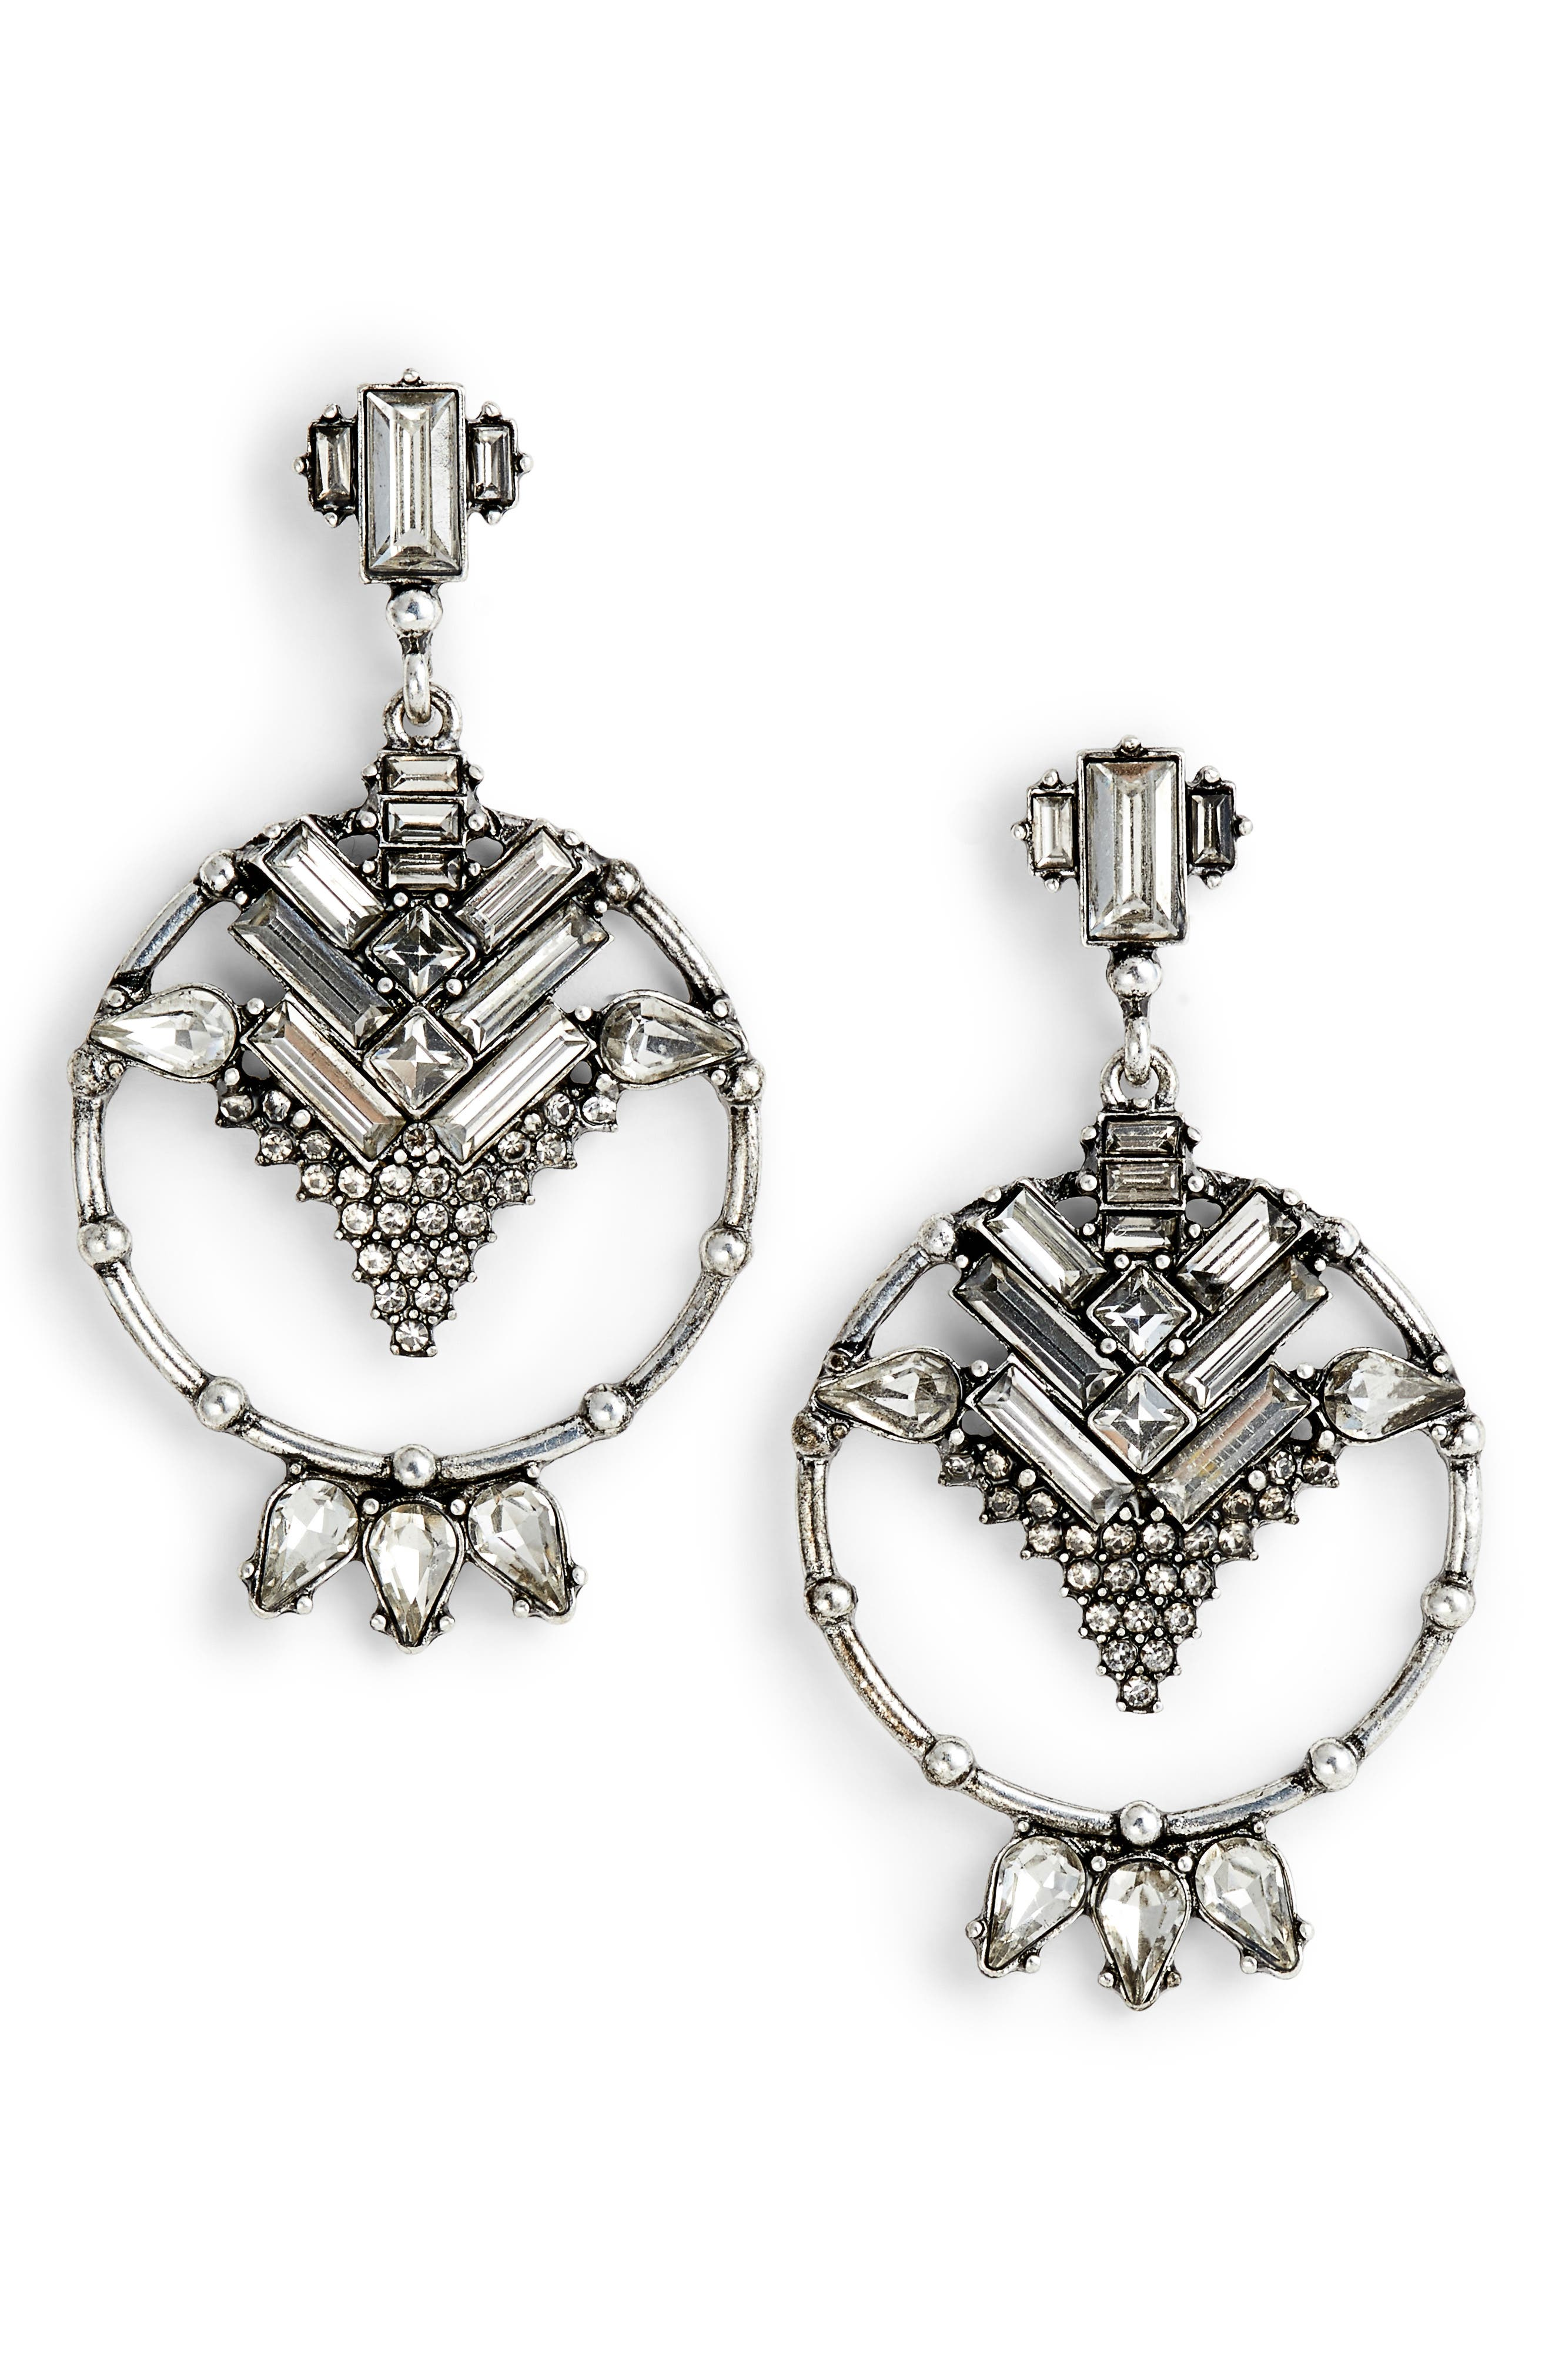 Main Image - DLNLX BY DYLANLEX Crystal Drop Earrings